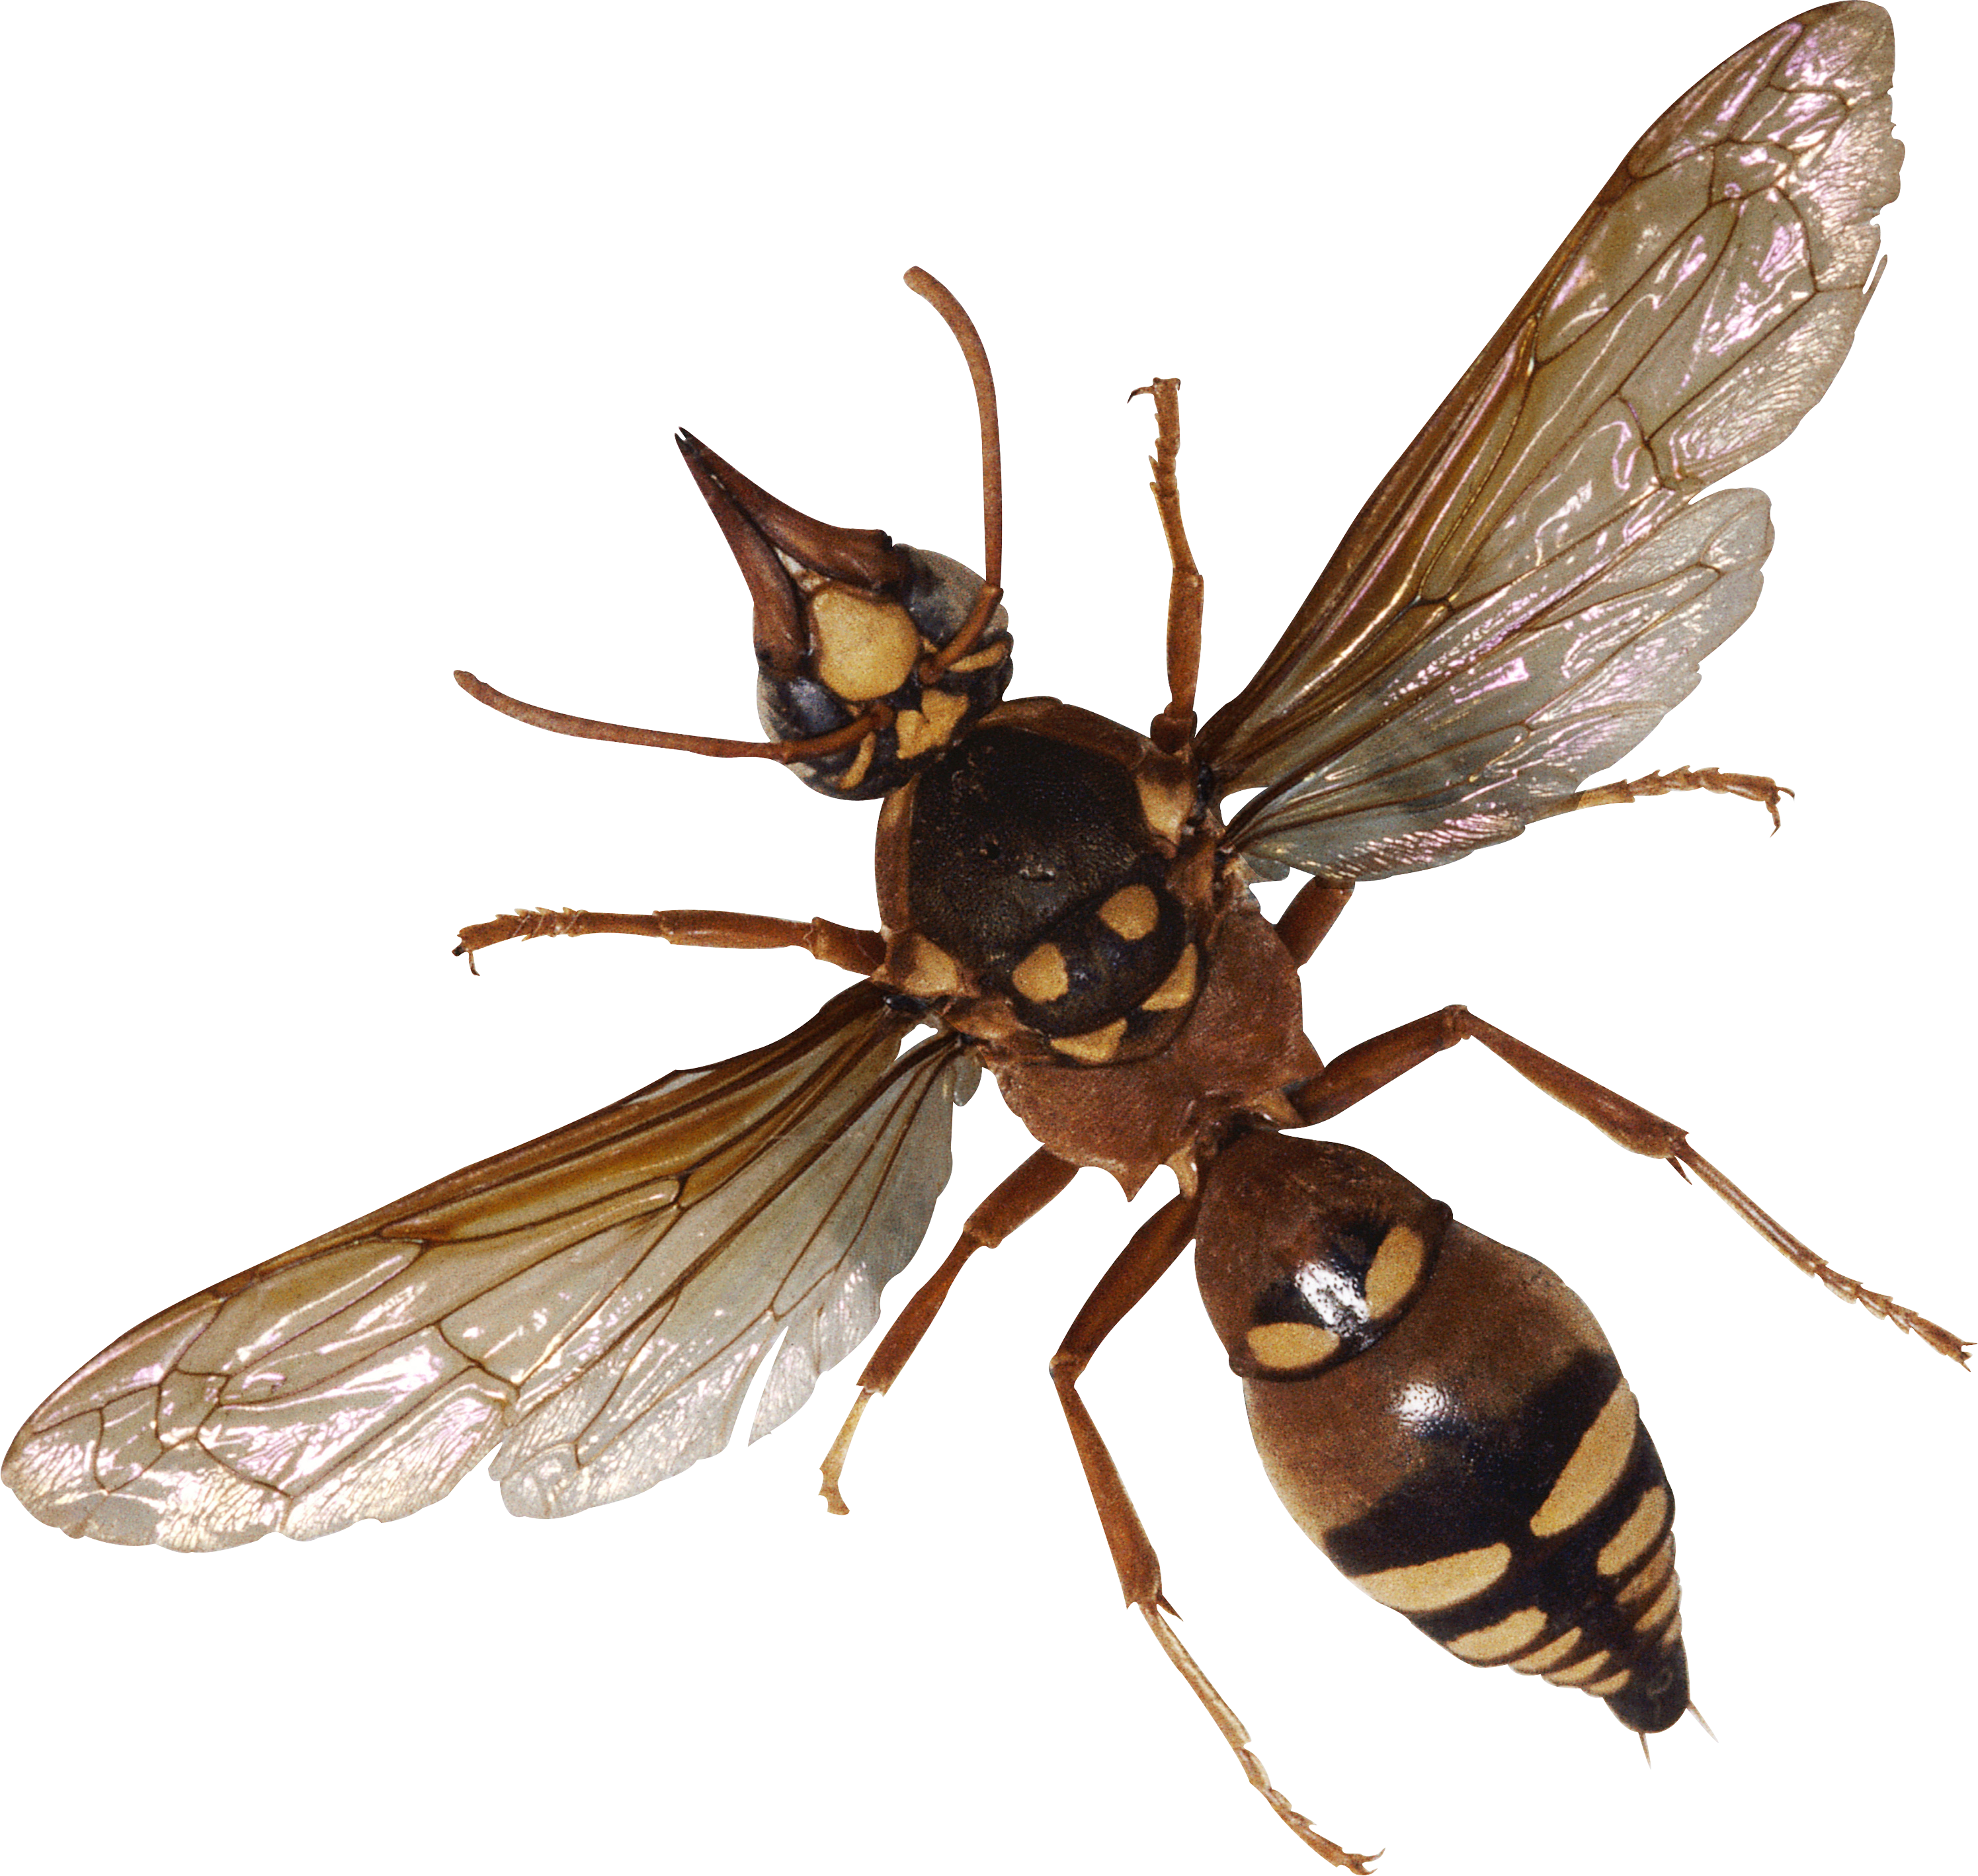 Mosquito clipart dead mosquito. Png insects and bugs